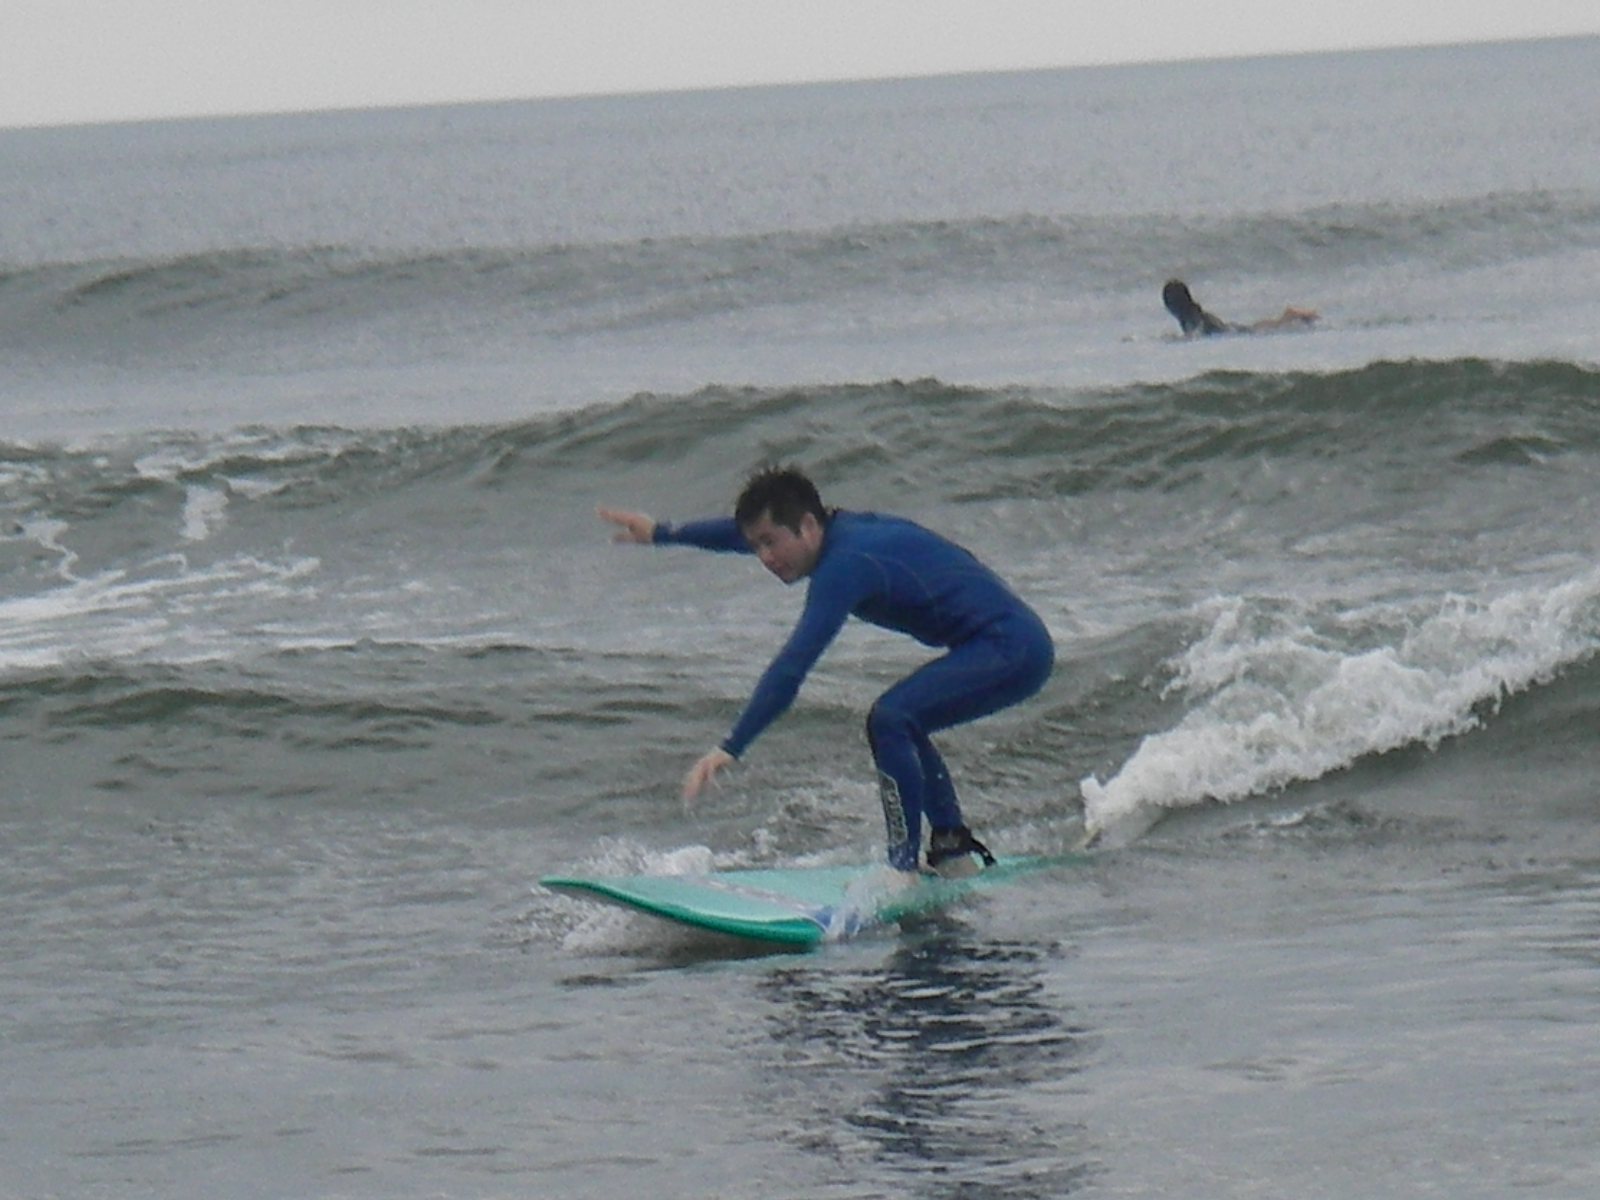 OHAHA SURF SCHOOL